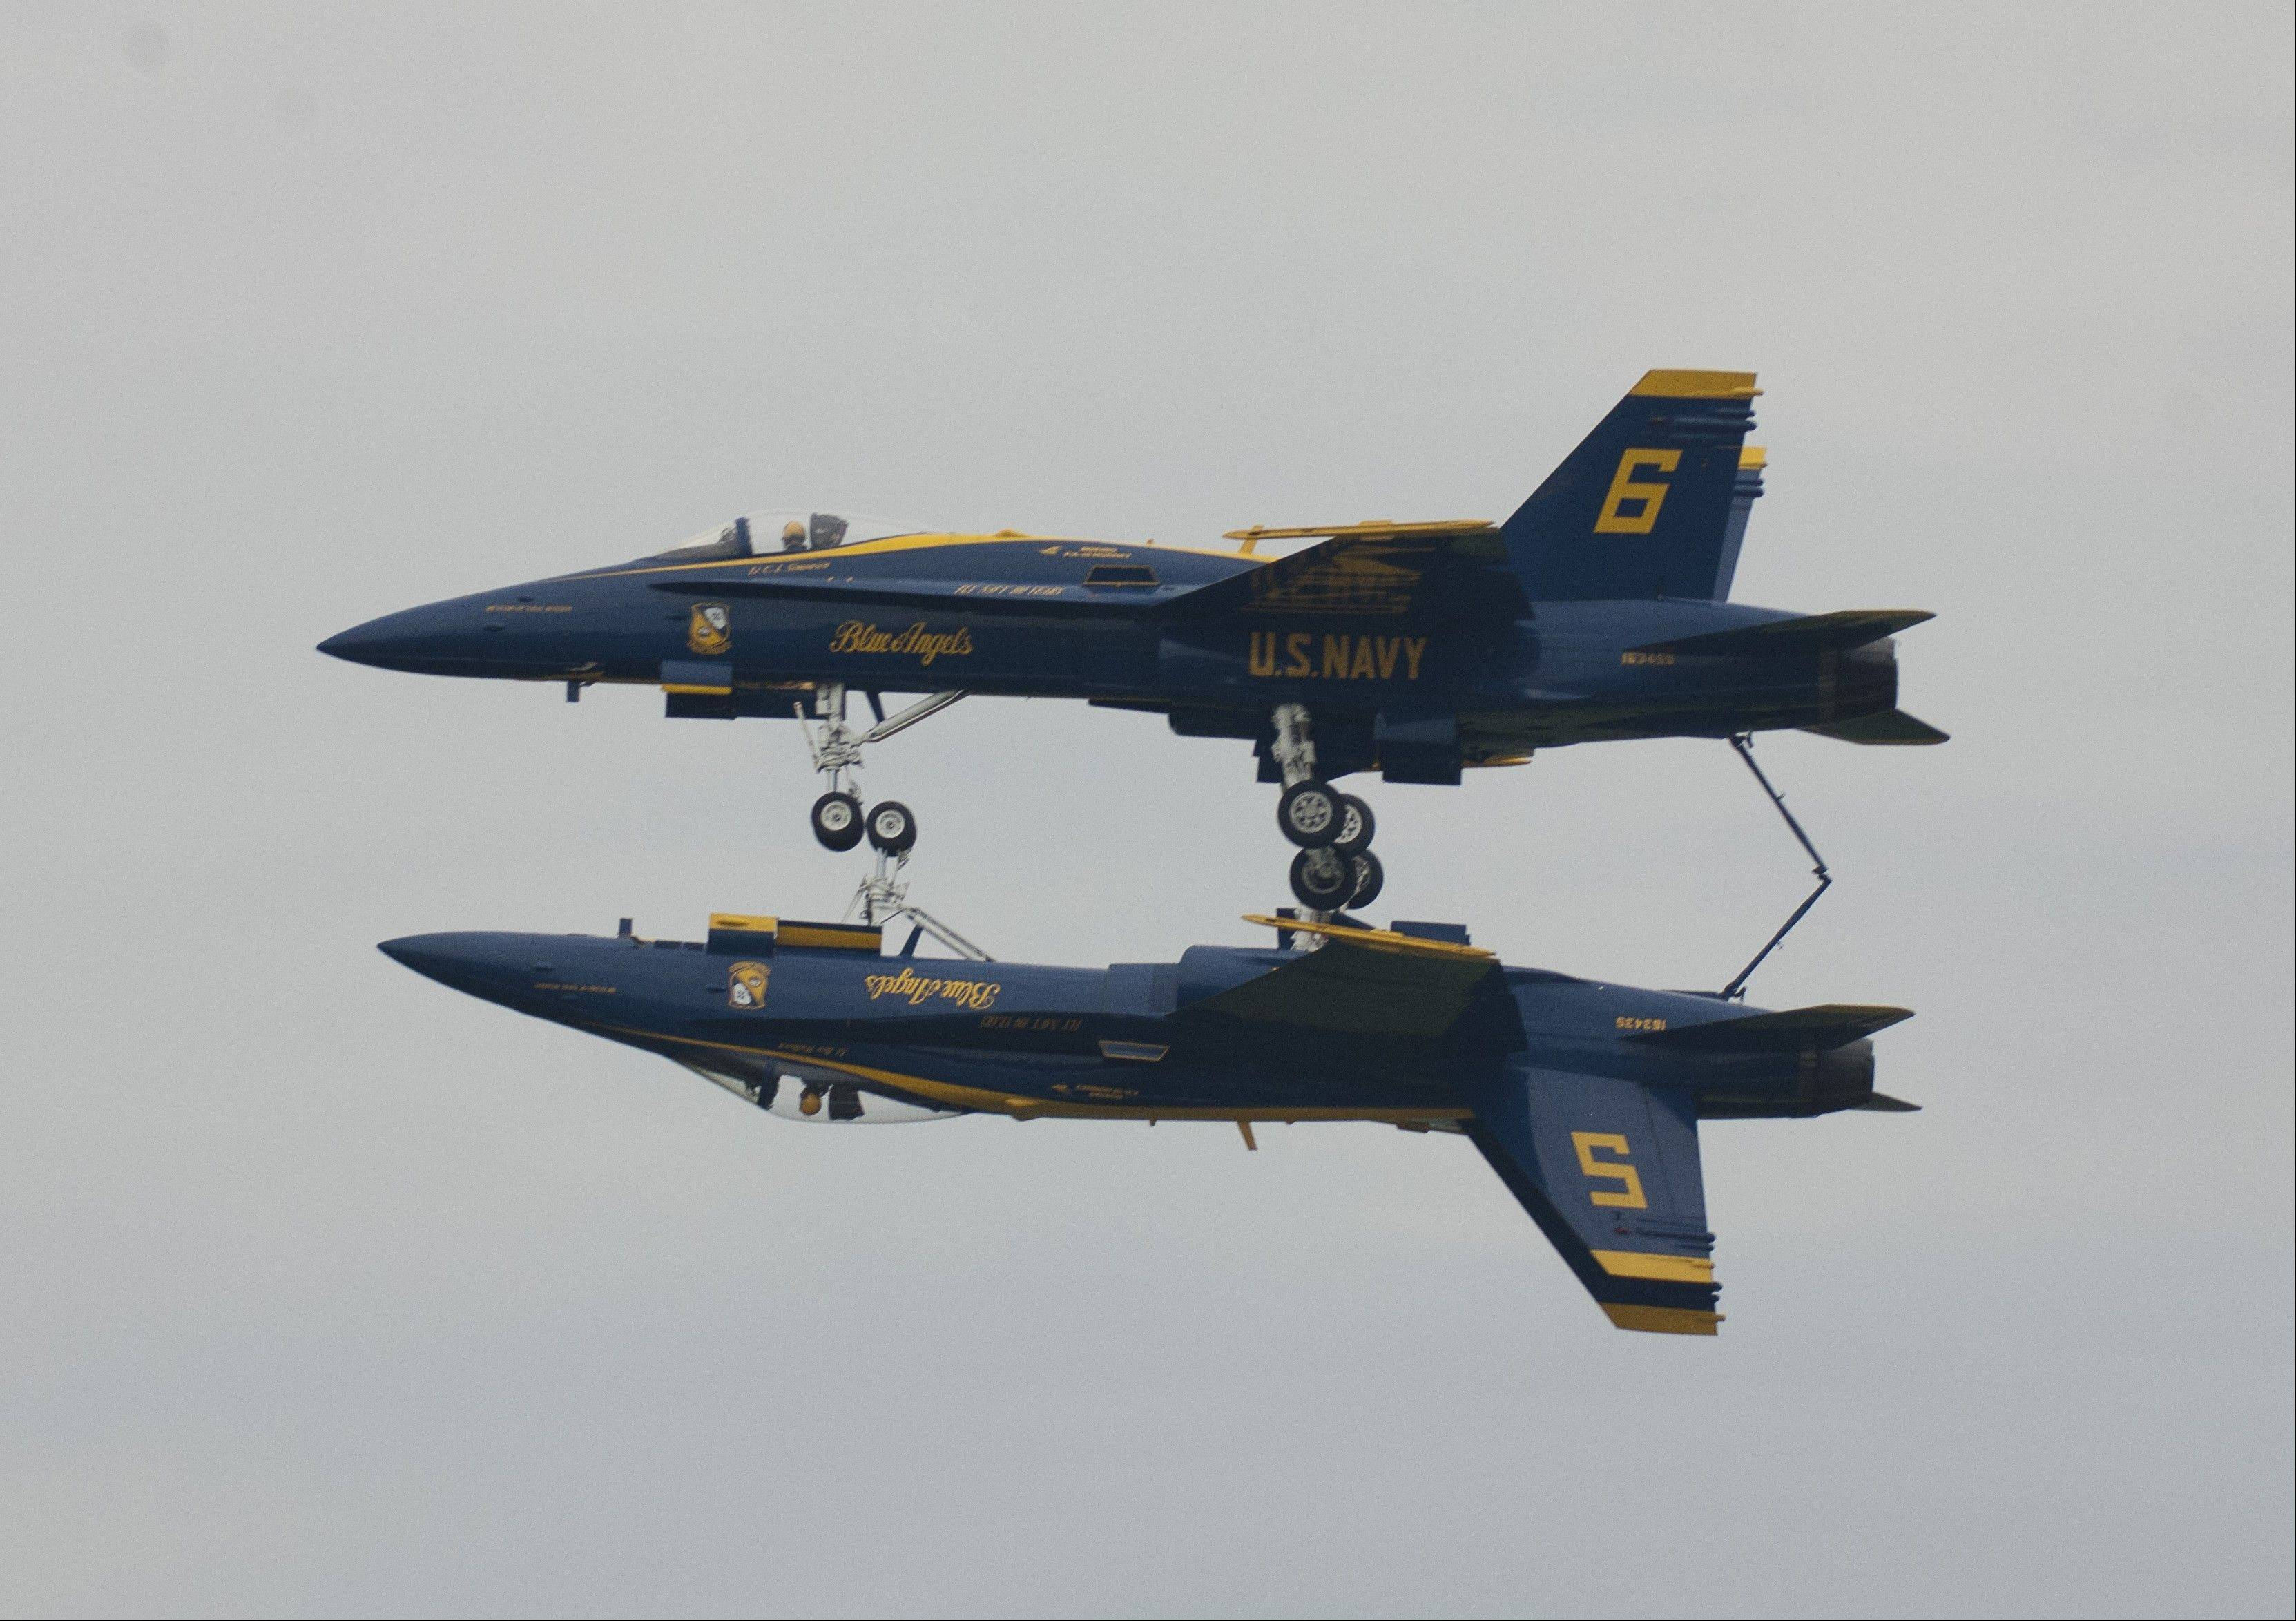 Catch the Blue Angels once again at the Chicago Air & Water Show.